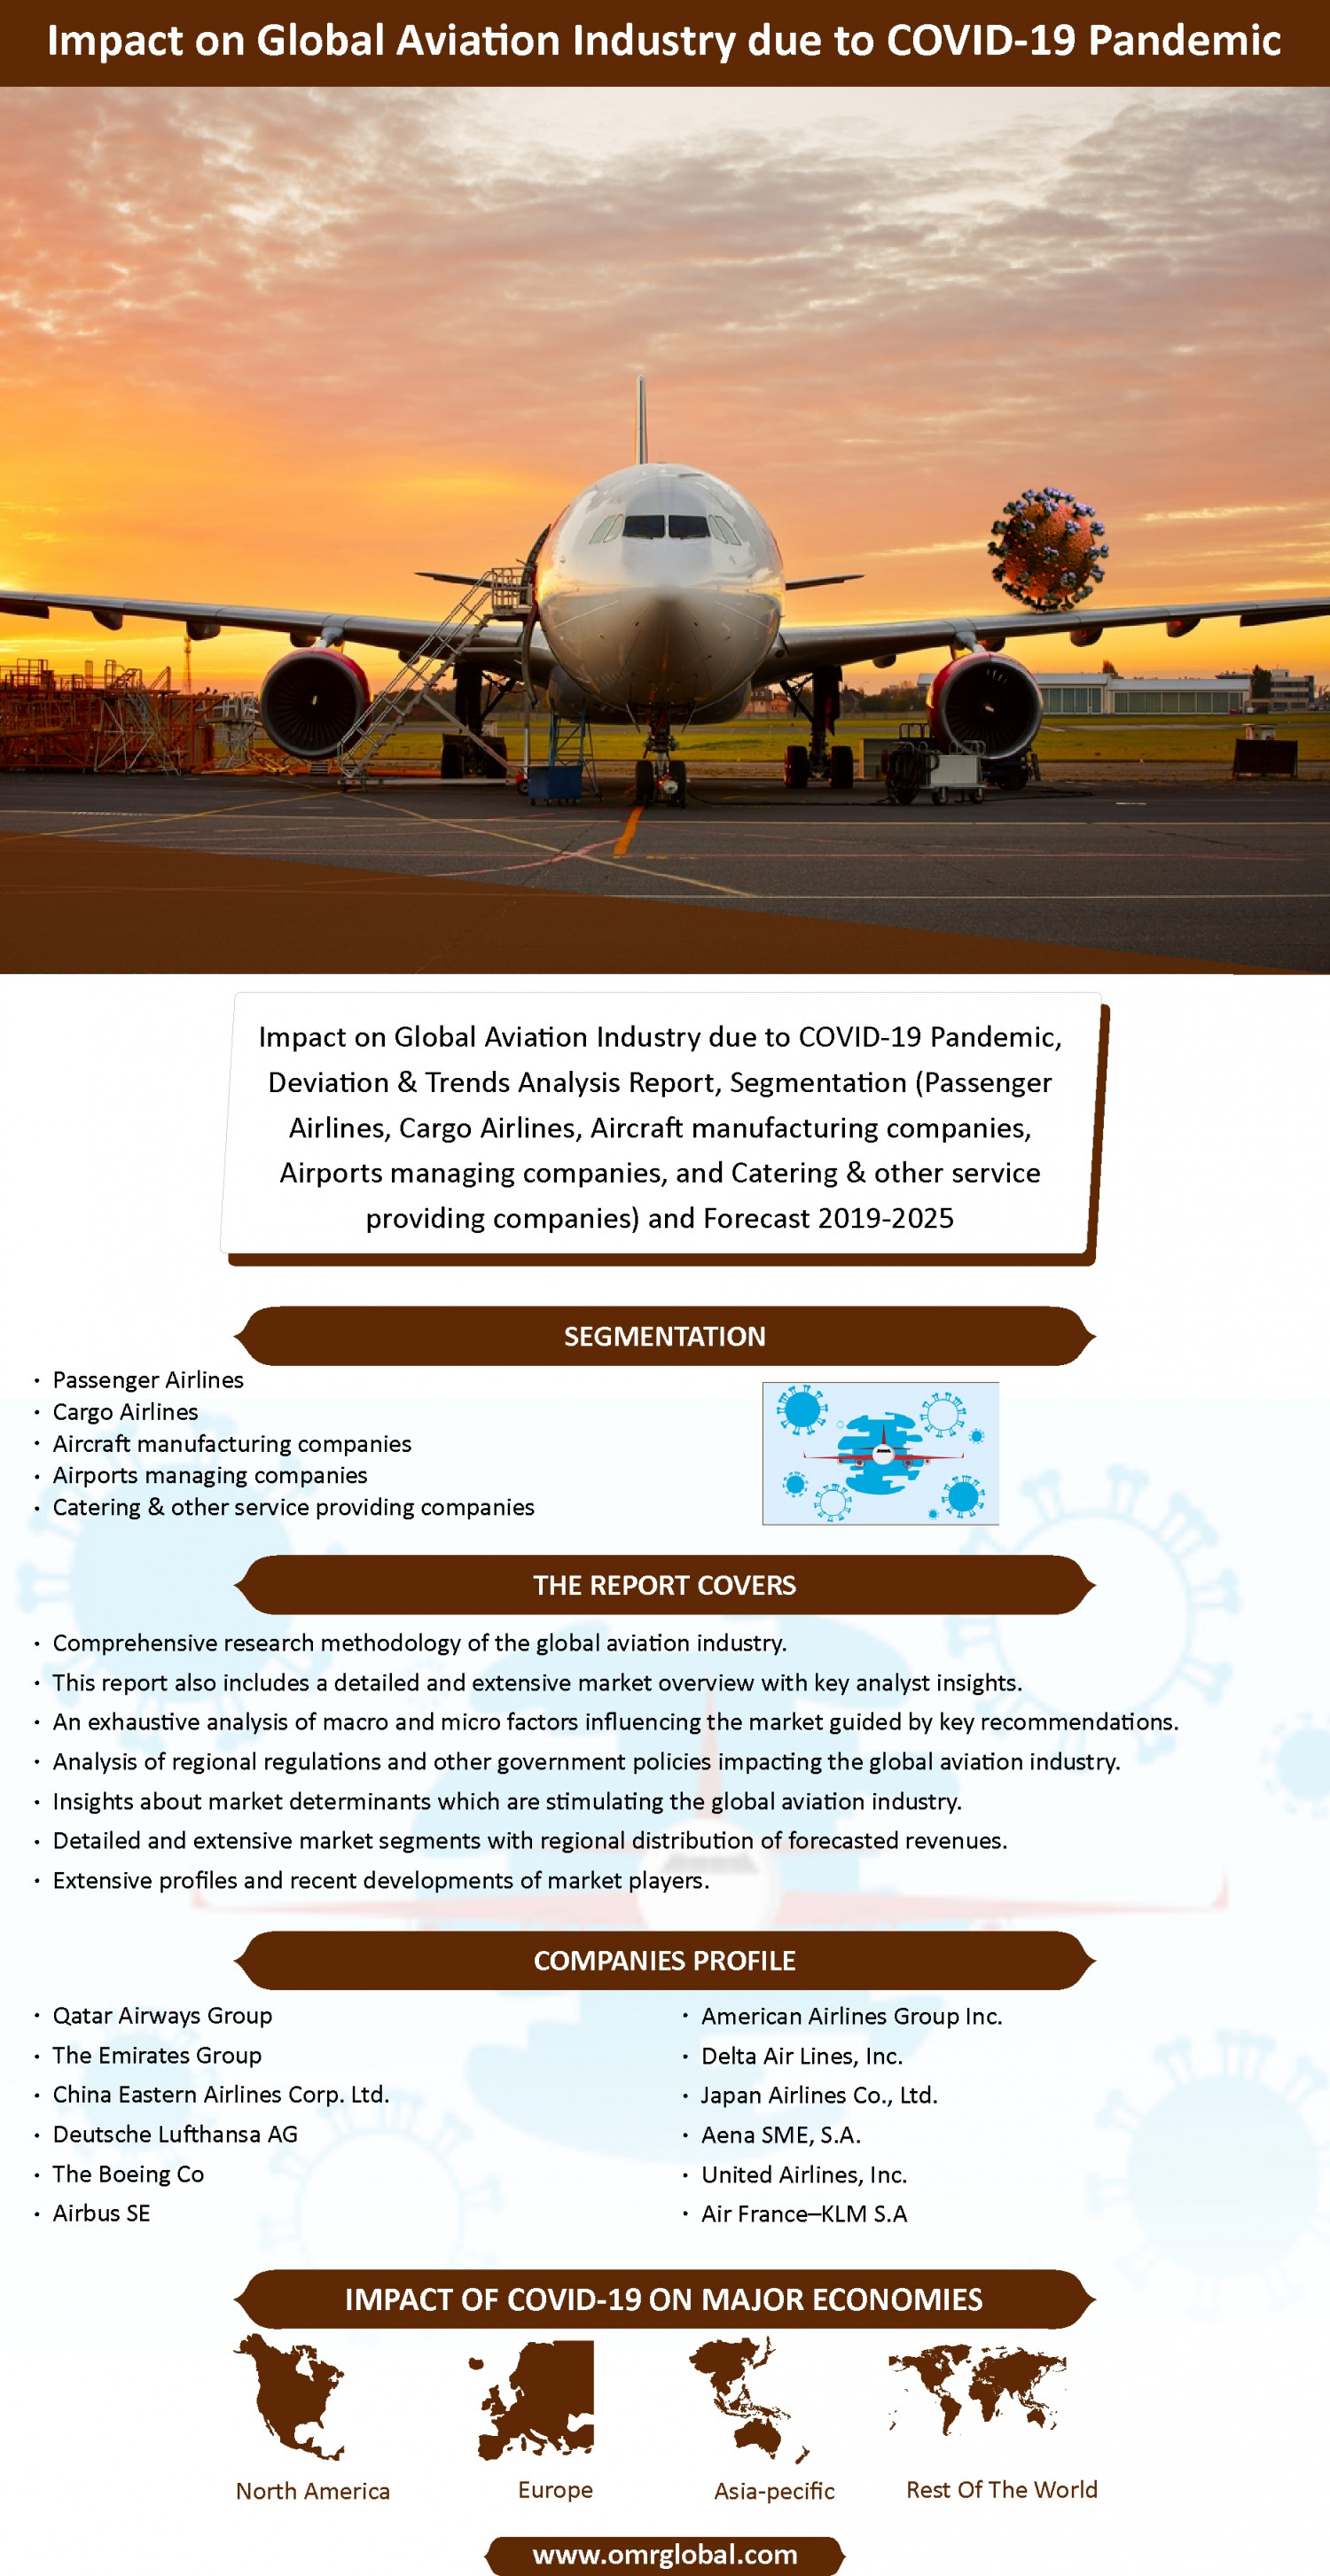 Impact on Global Aviation Industry due to COVID-19 Pandemic Infographic